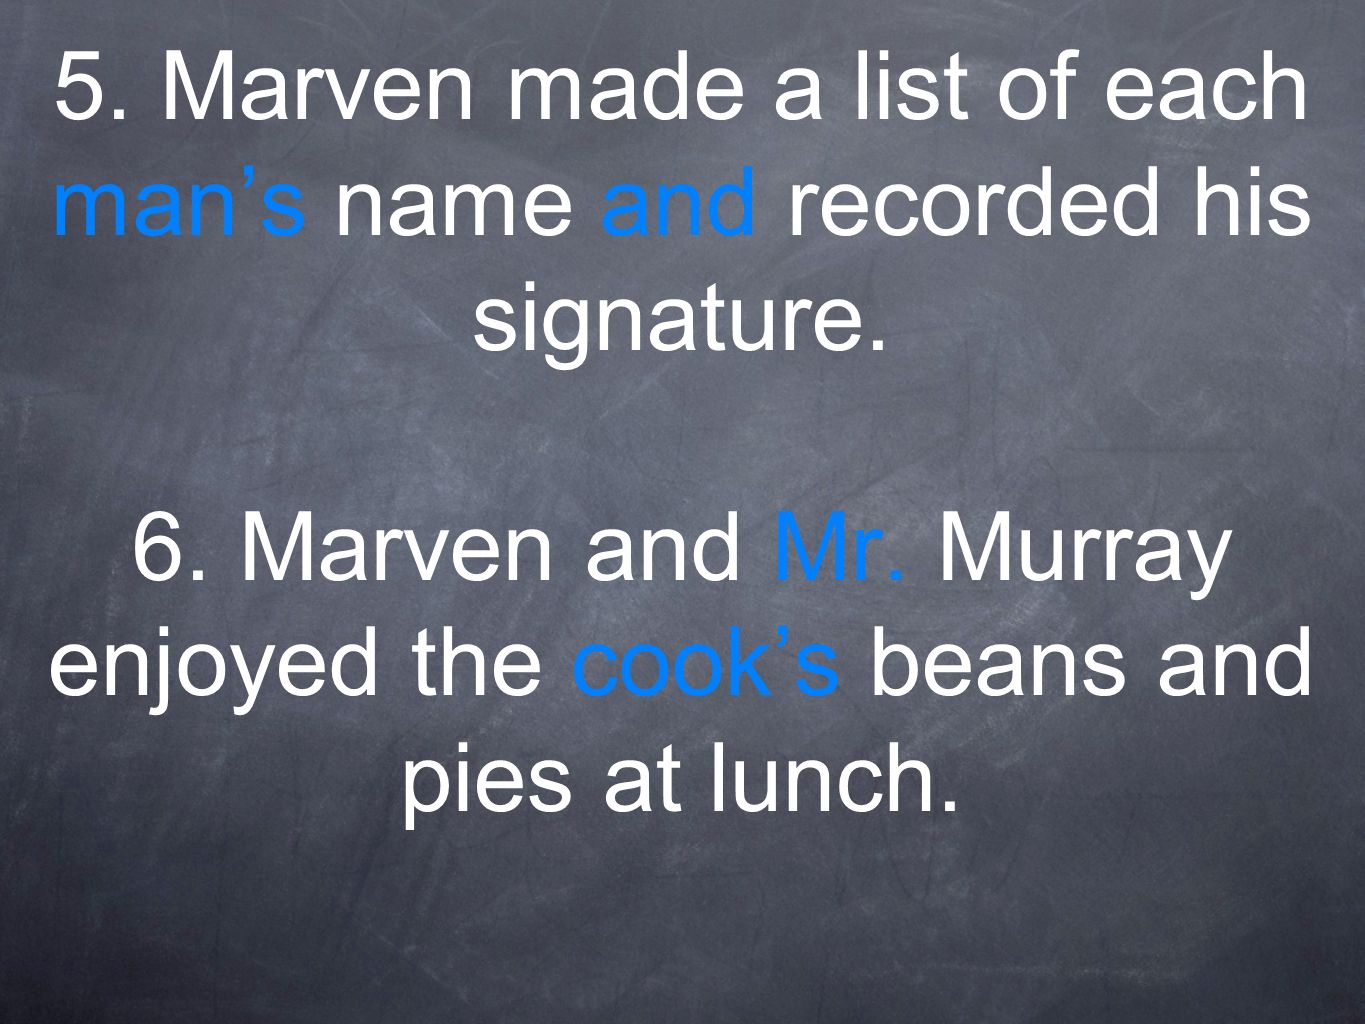 5. Marven made a list of each mans name and recorded his signature. 6. Marven and Mr. Murray enjoyed the cooks beans and pies at lunch.